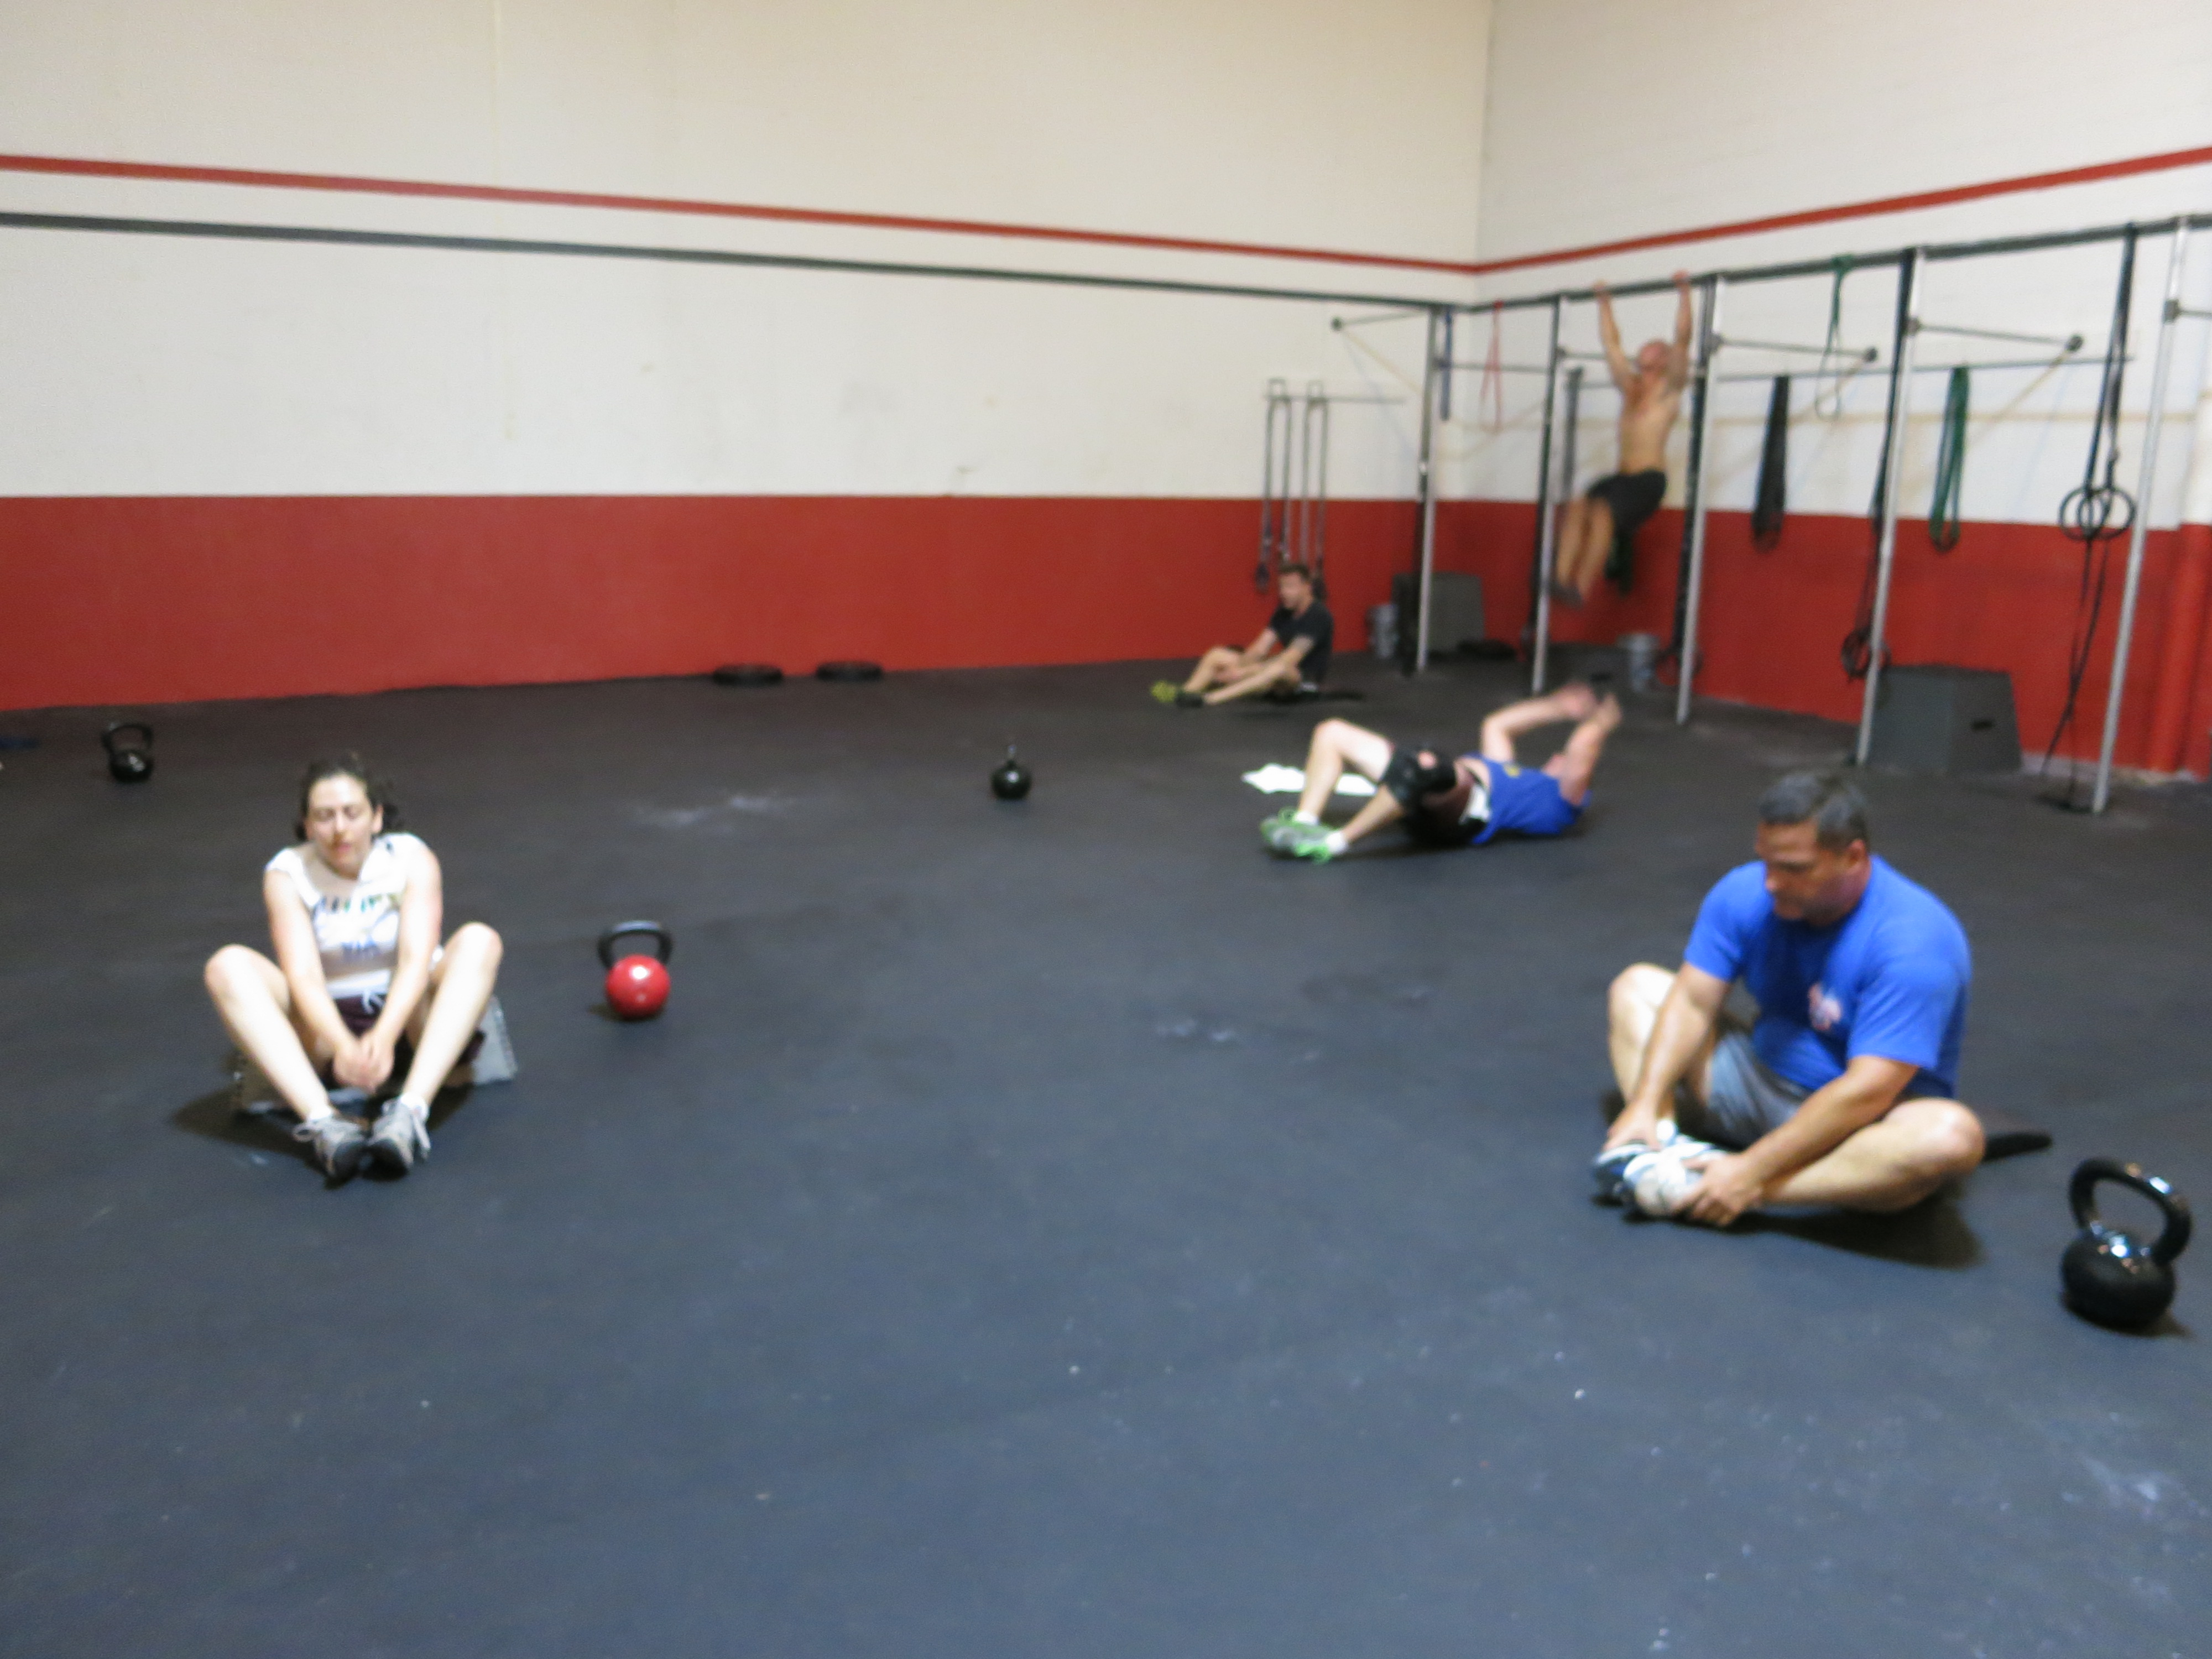 Thursday, September 19 WOD